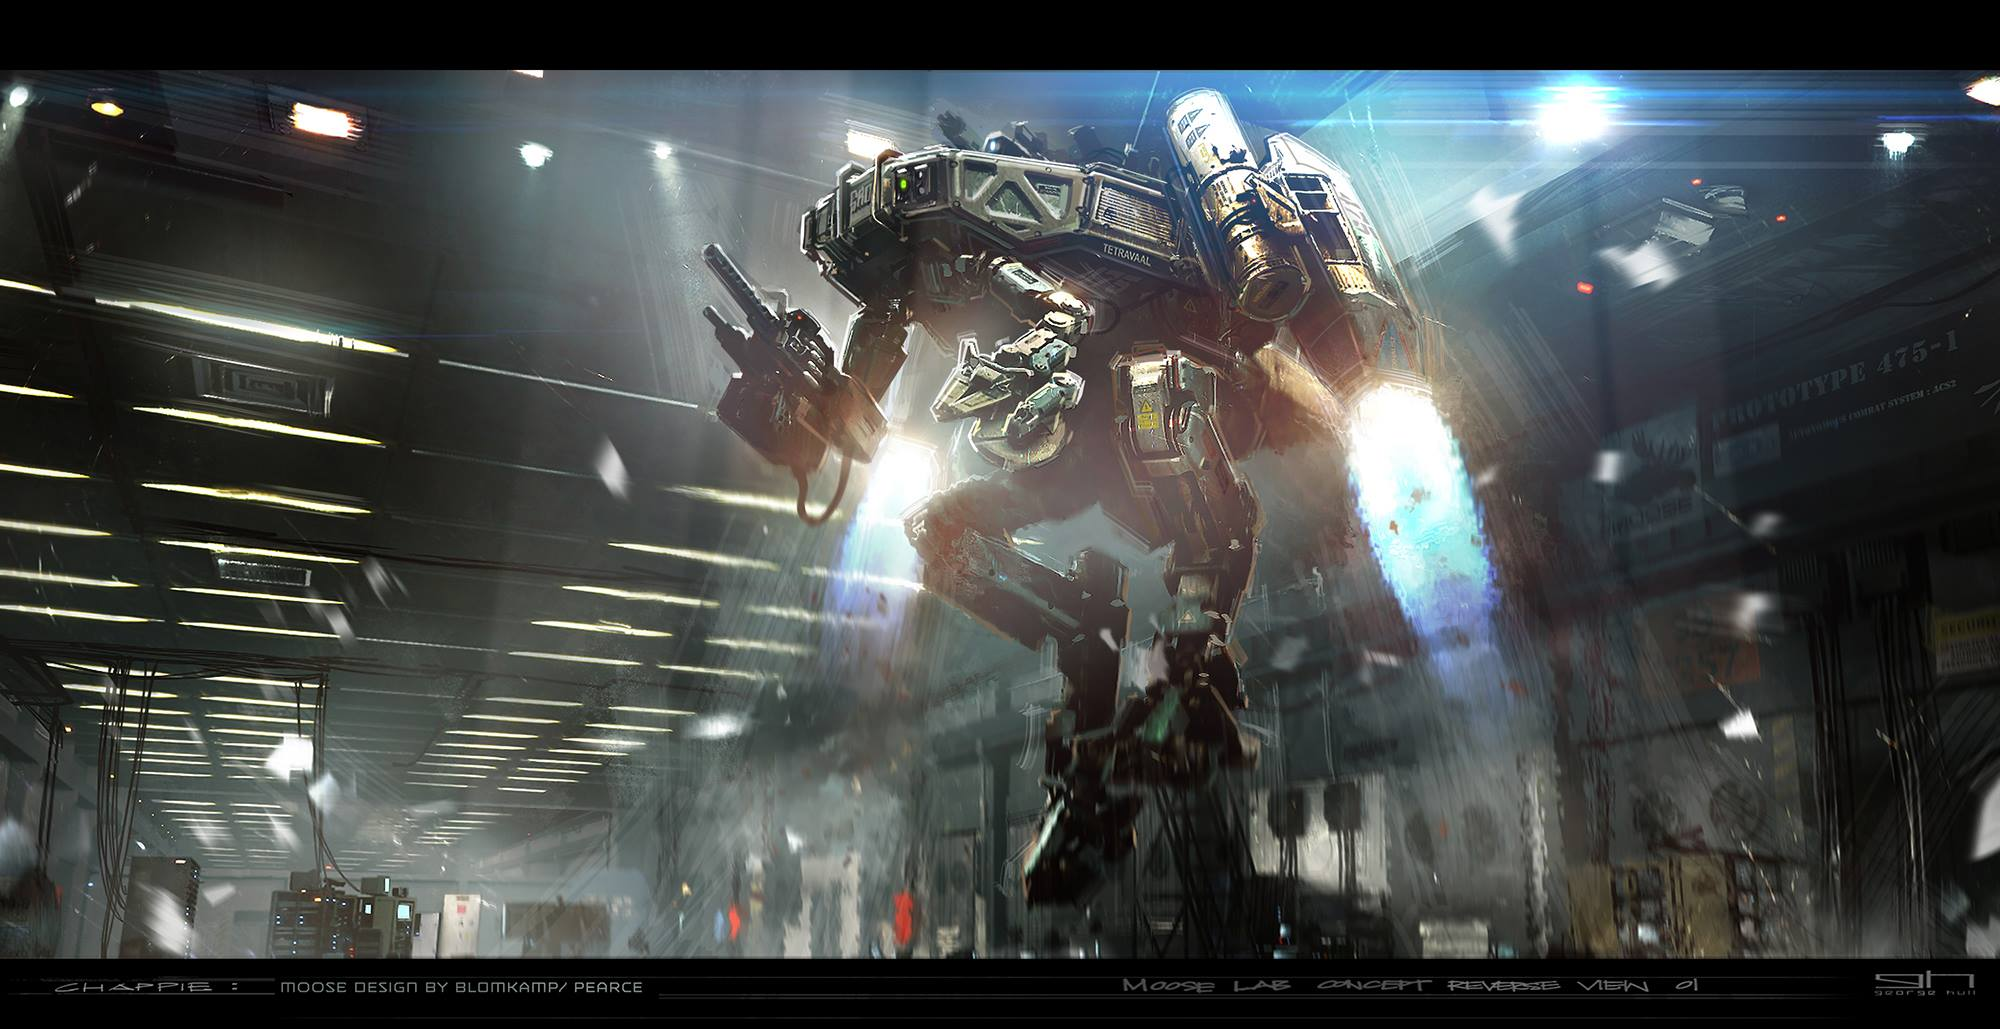 Chappie Concept Art by George Hull (8 pics)